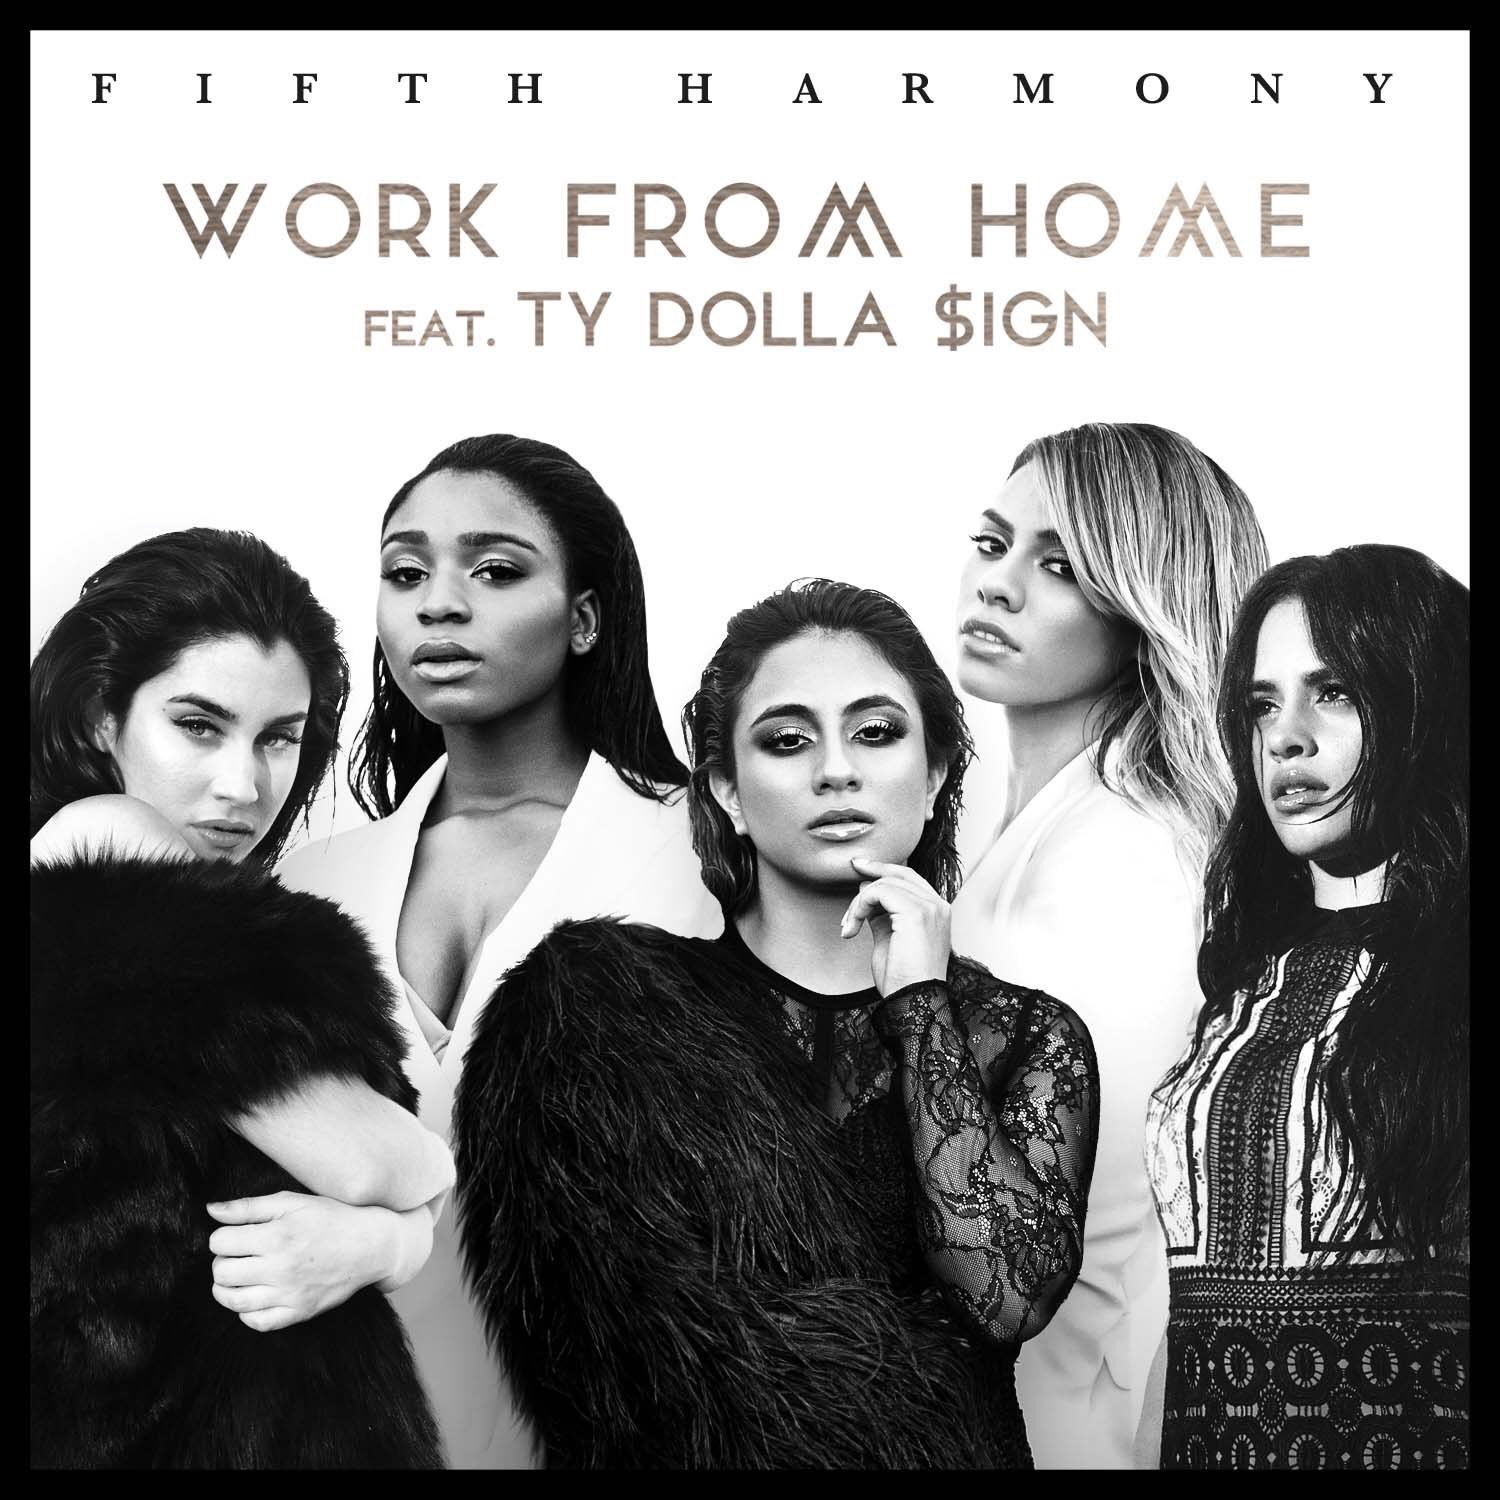 Fifth harmony work from home cover